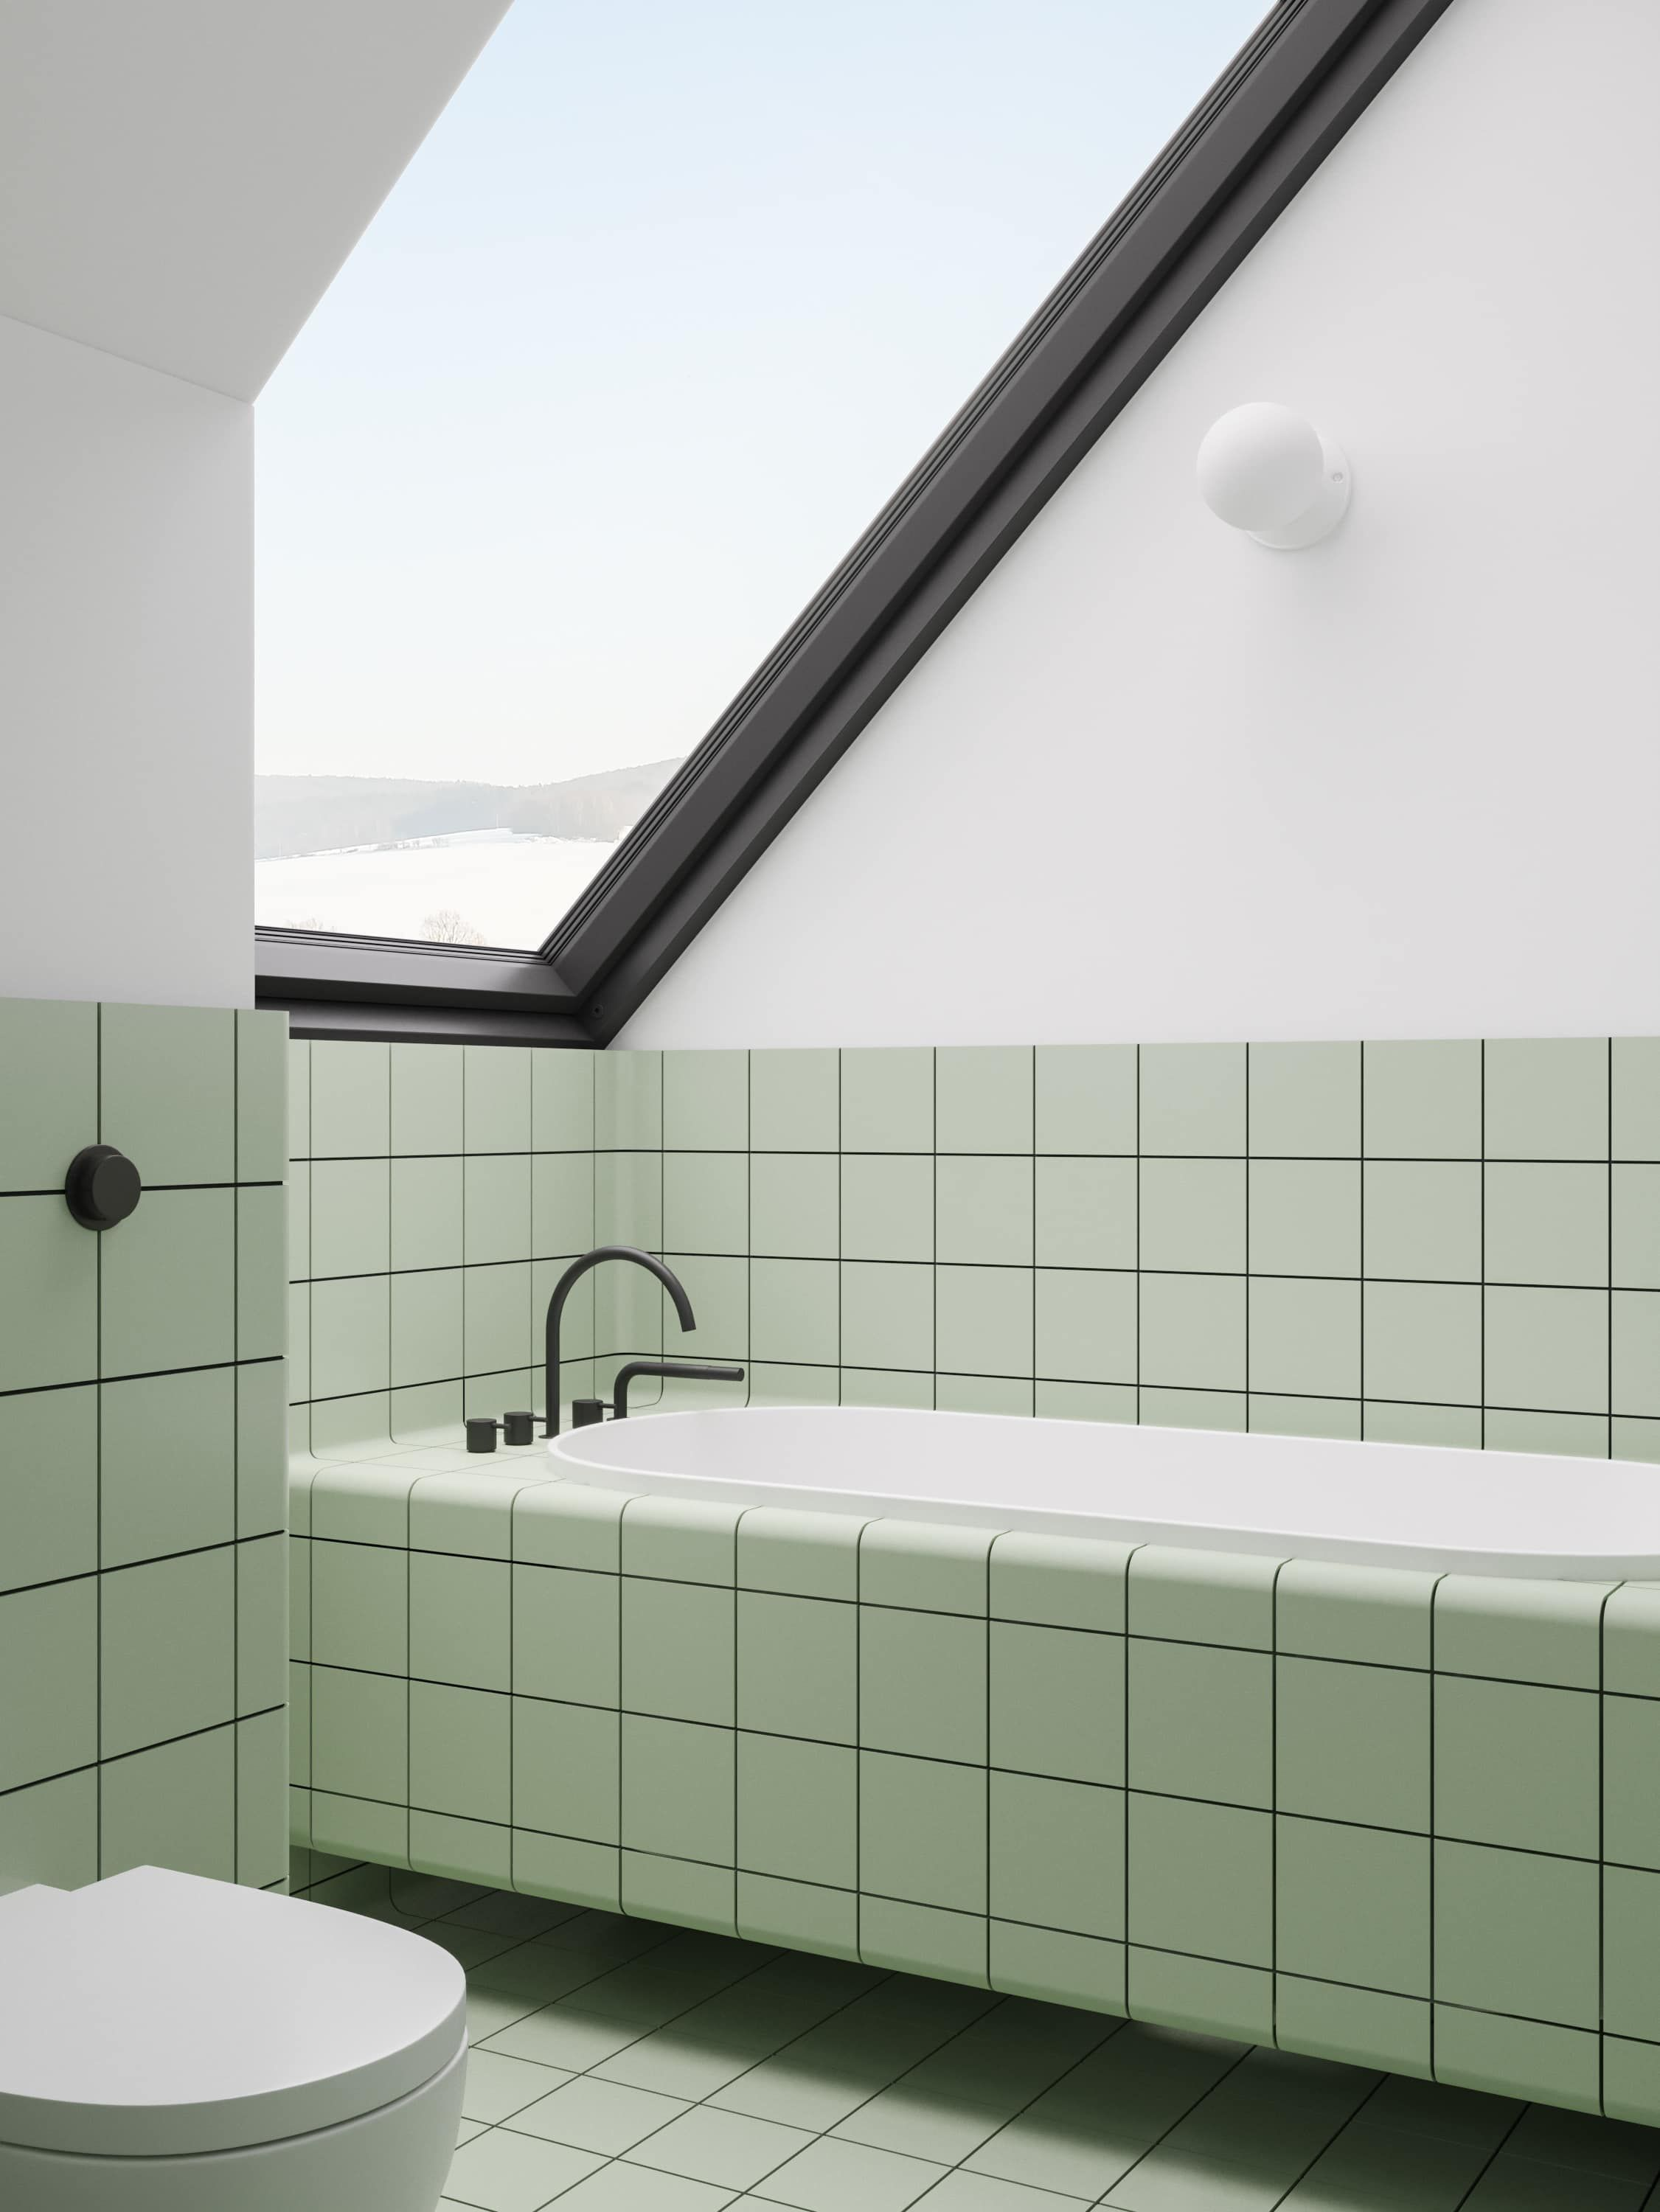 Re Style Your Tile The 99 Cent Solution To Elevate Your Space In 2020 Bathroom Design Bathroom Interior Bathrooms Remodel